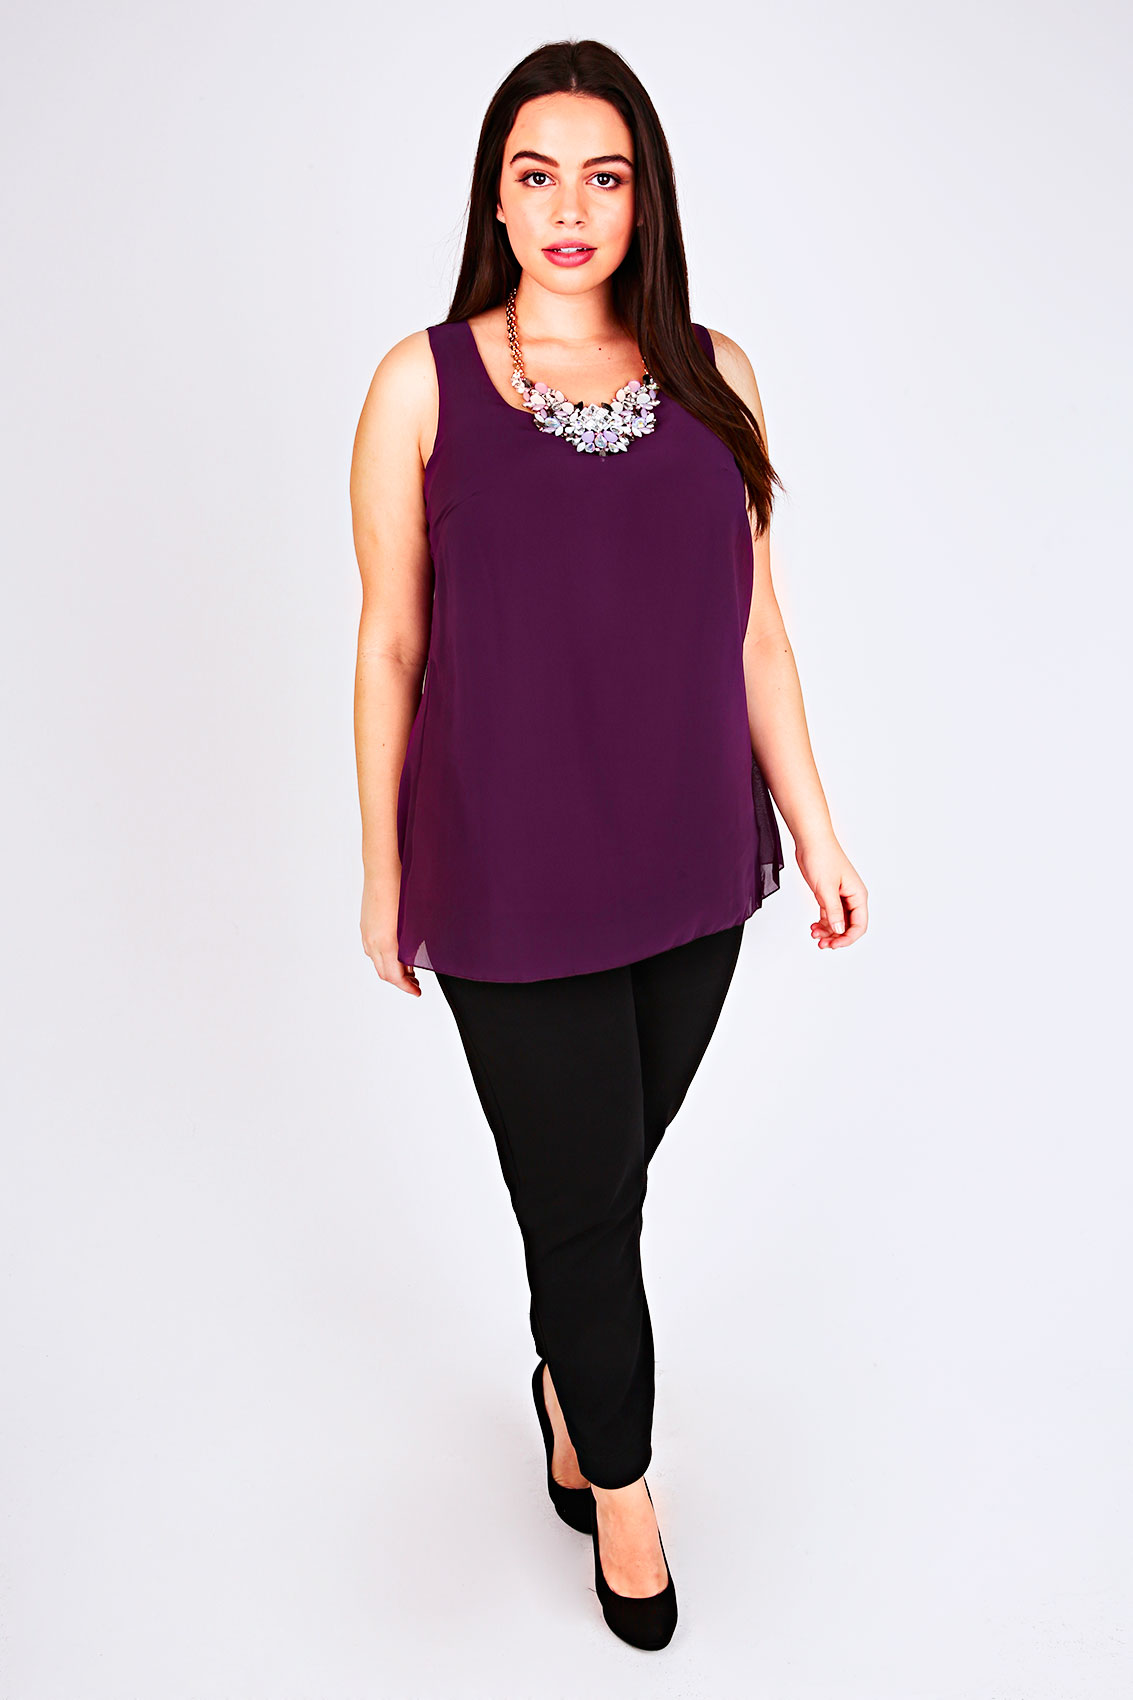 View our Bow Back Wrap Neck Top and shop our selection of designer women's plus size Tops, clothing and fashionable accessories. View our Bow Back Wrap Neck Top and shop our selection of designer women's plus size Tops, clothing and fashionable accessories. Skip to main content.